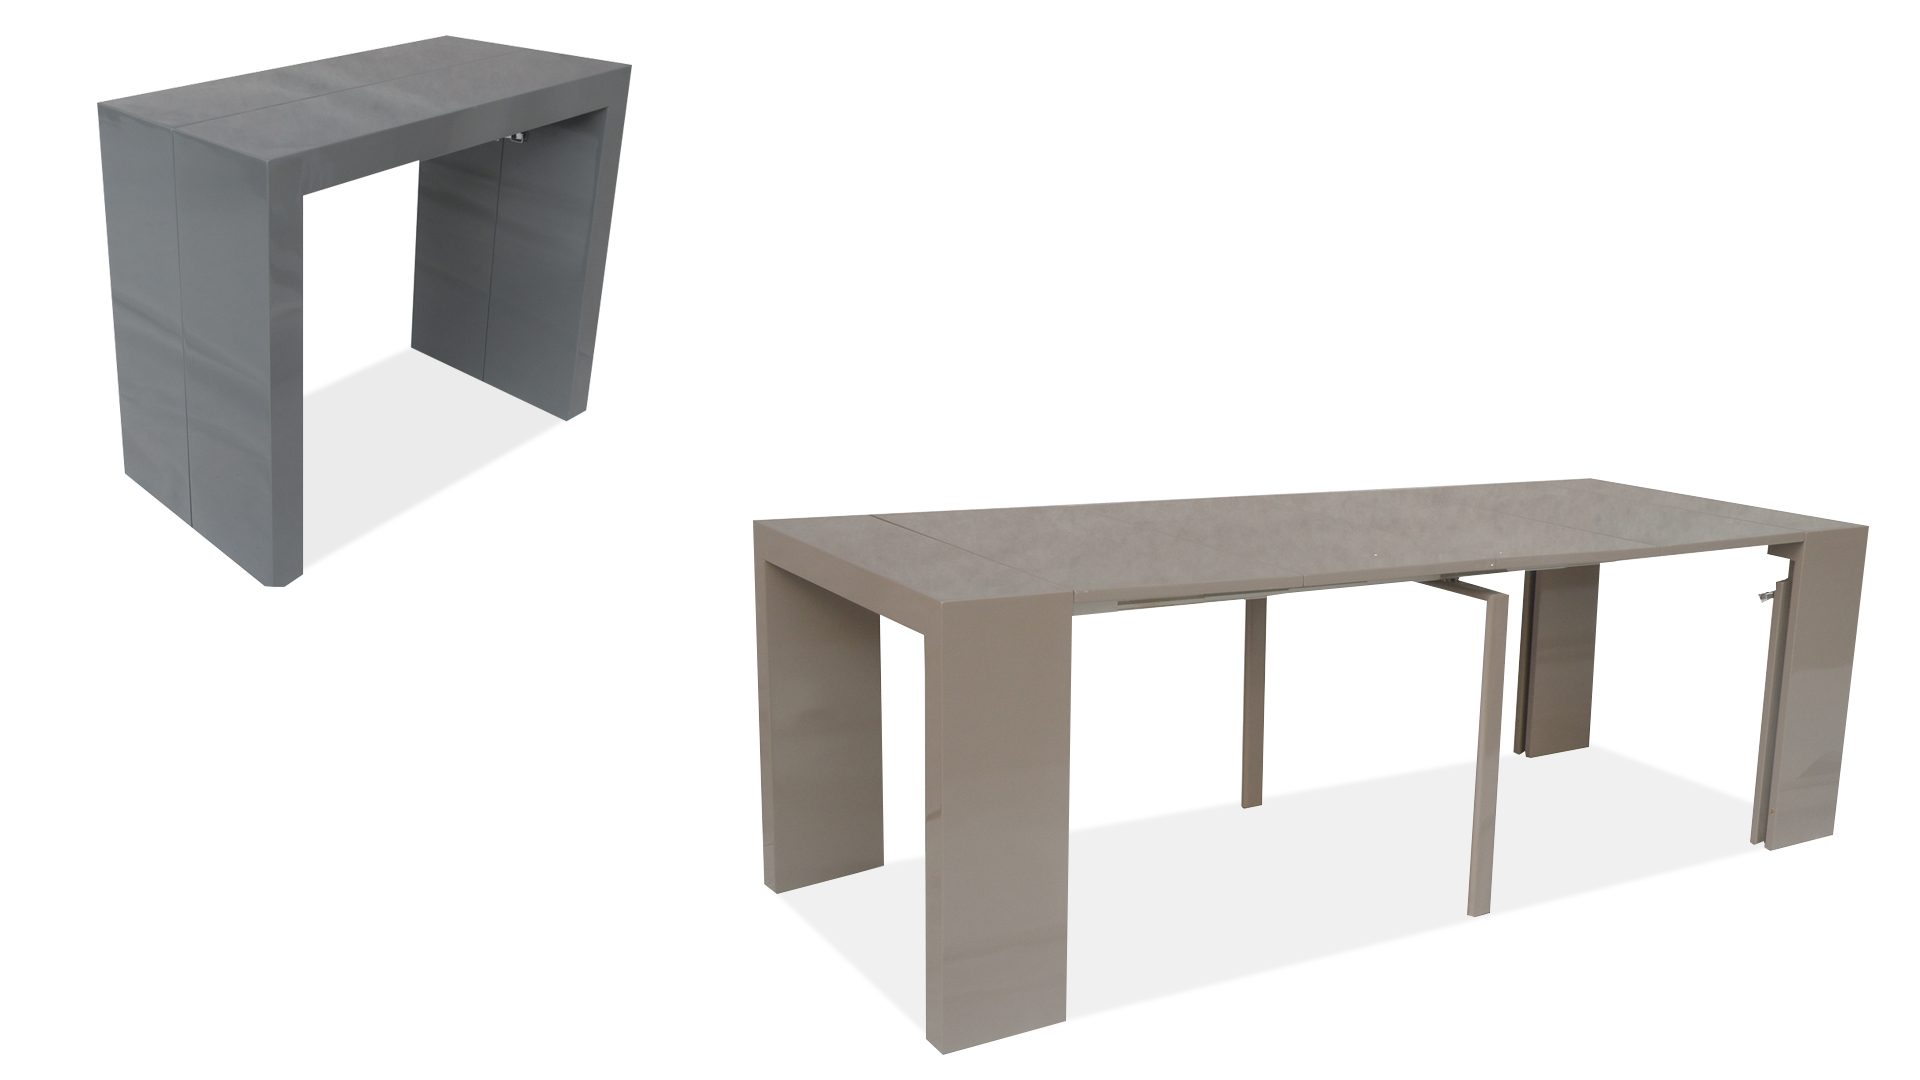 Promotion 6 console transformable en table diner flex table tirable - Console transformable en table a manger ...